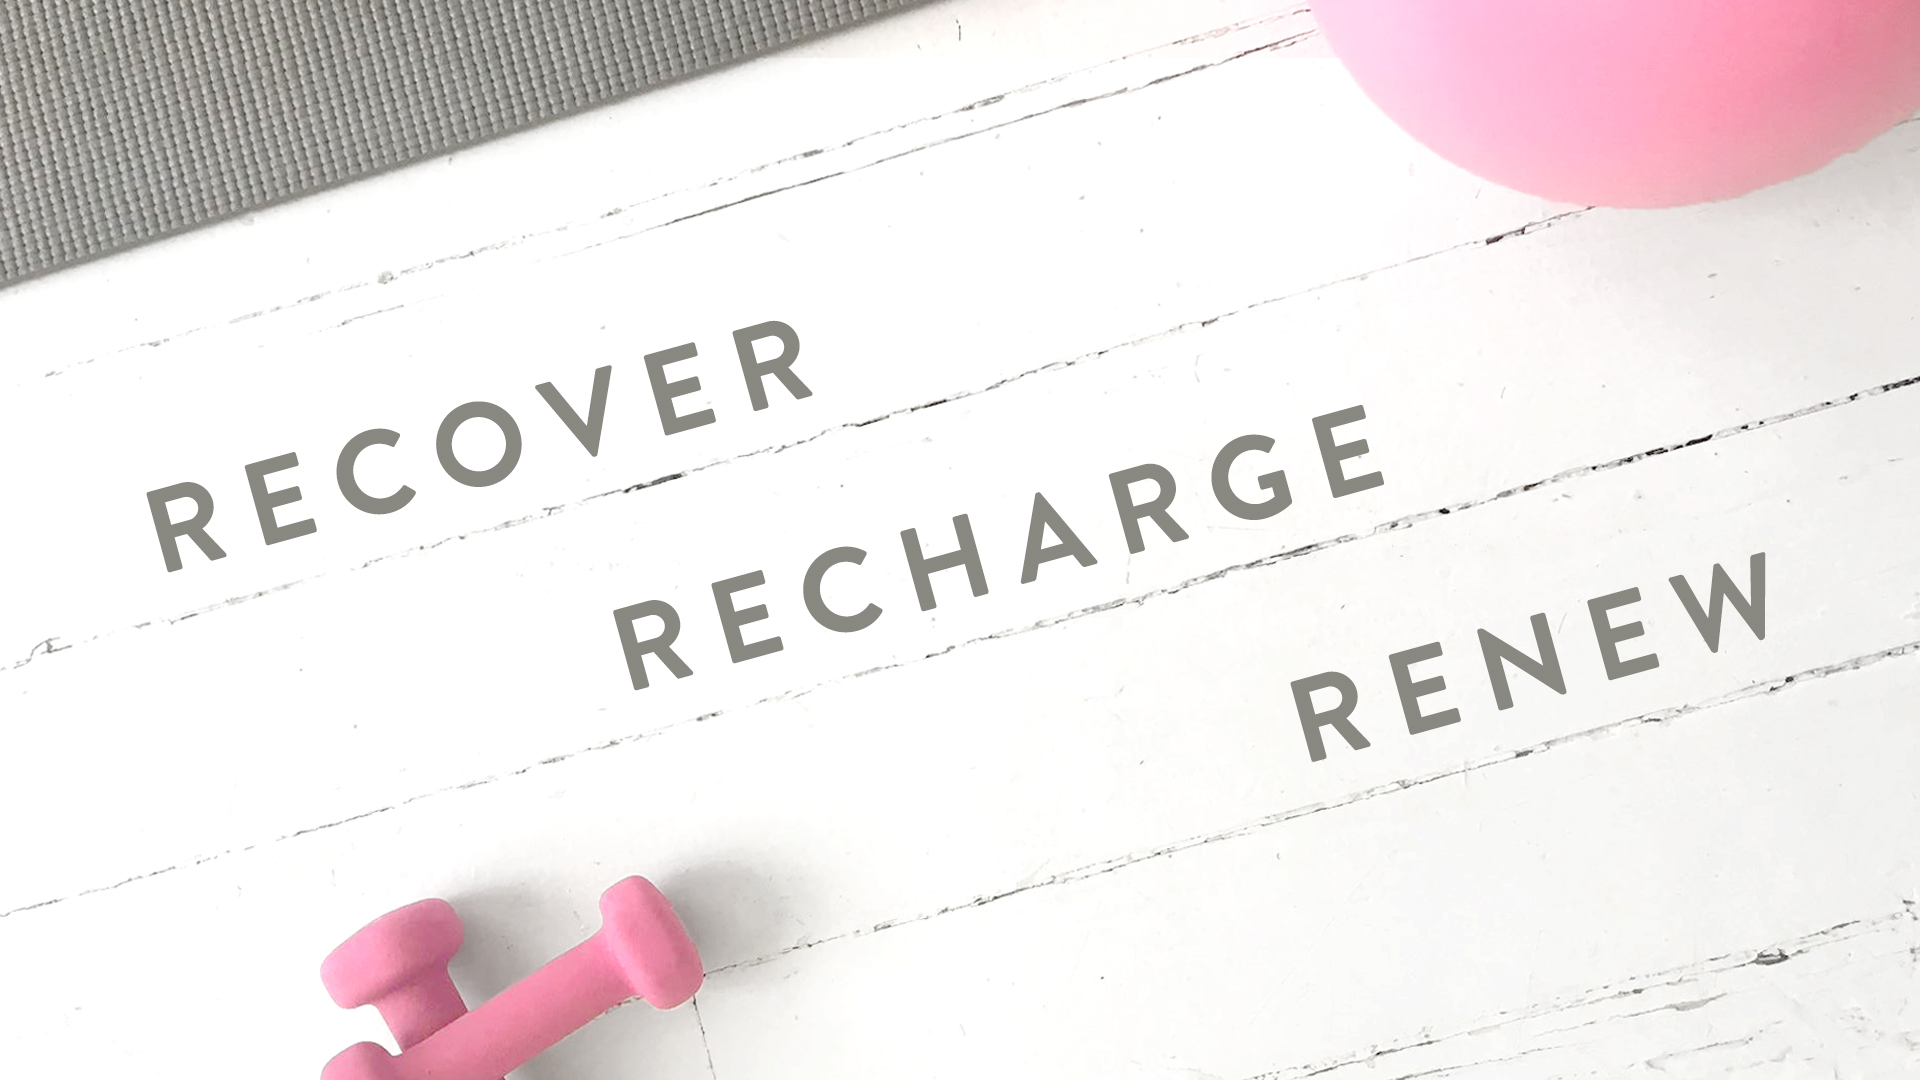 Recover, Recharge, Renew